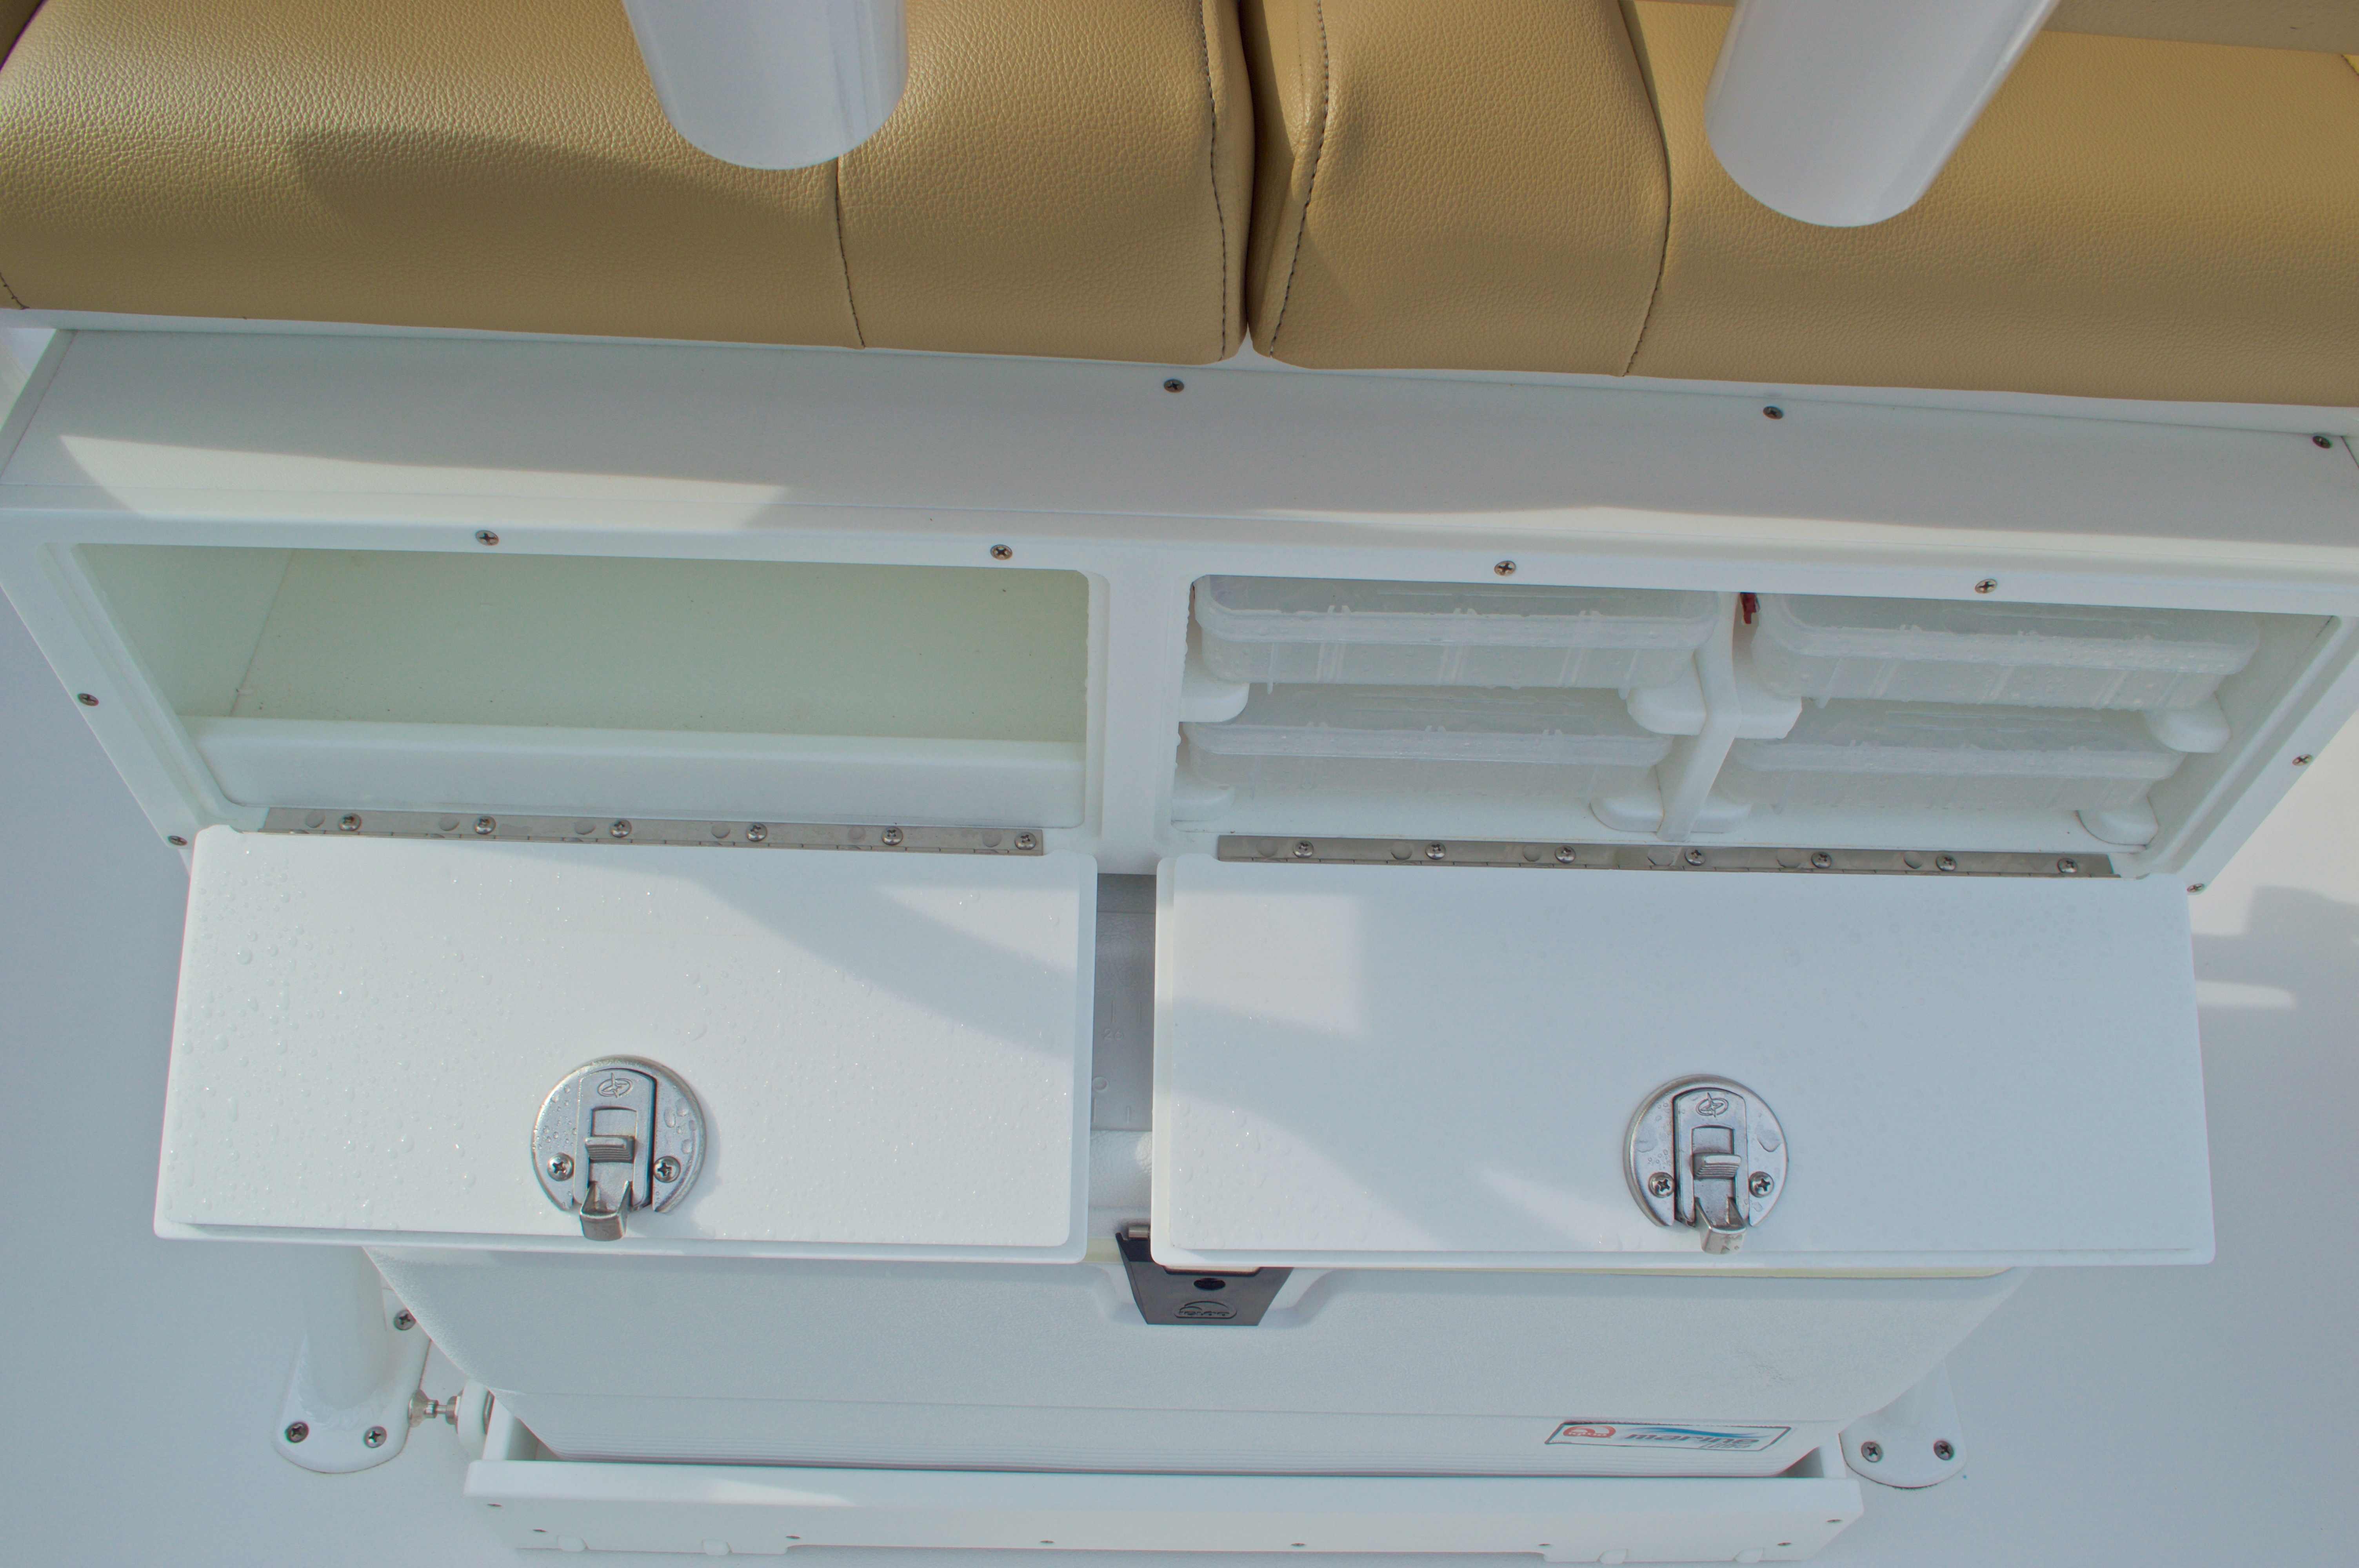 Thumbnail 23 for New 2016 Sportsman Open 232 Center Console boat for sale in Vero Beach, FL